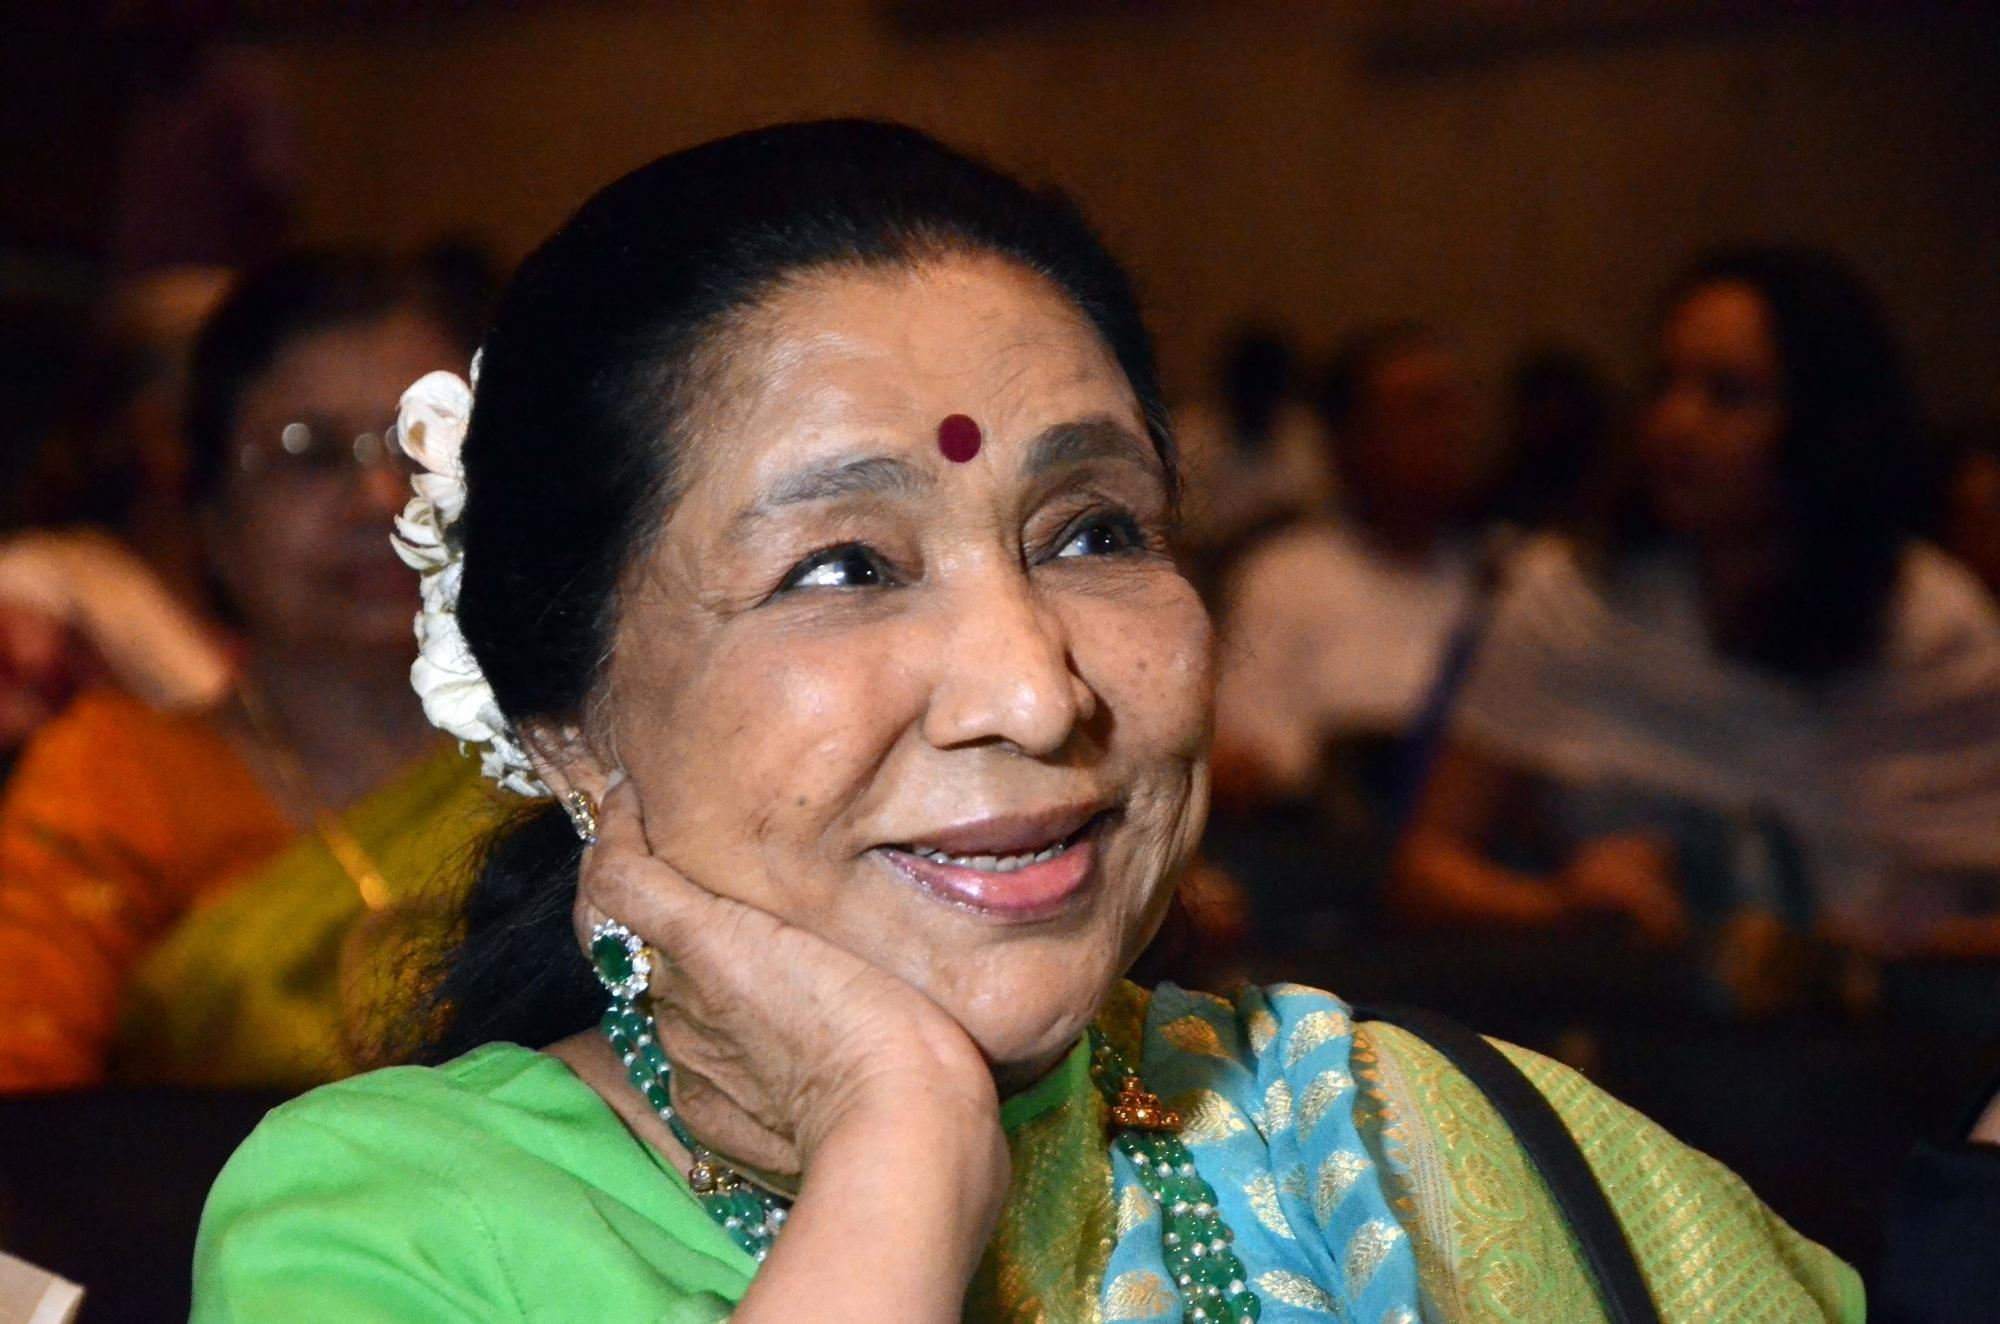 Impossible for anyone to take Kishore Kumar's place: Asha Bhosle